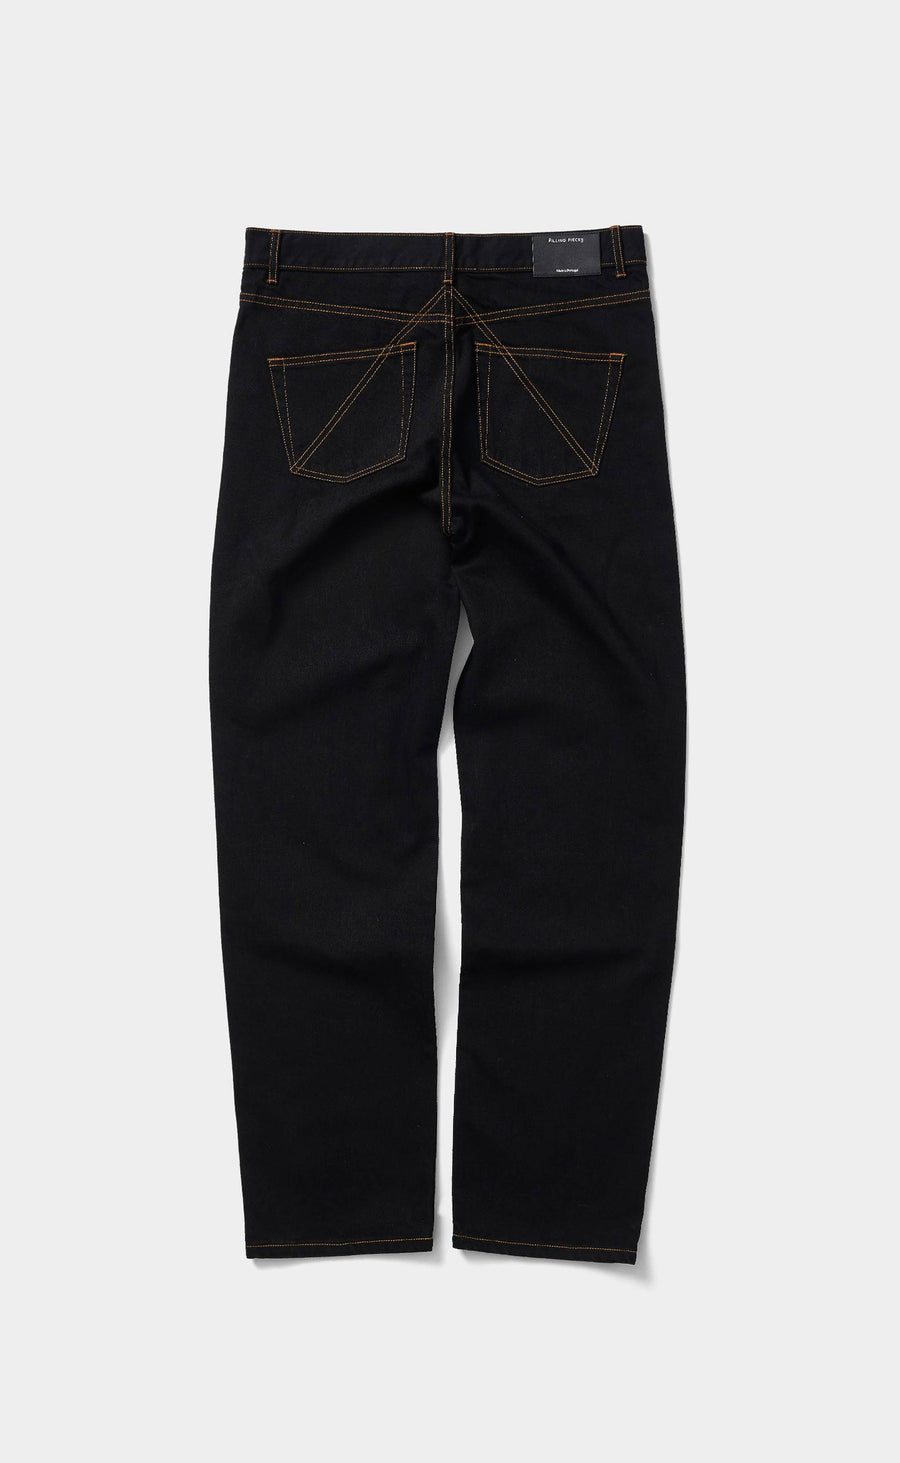 Denim Pants Black - men